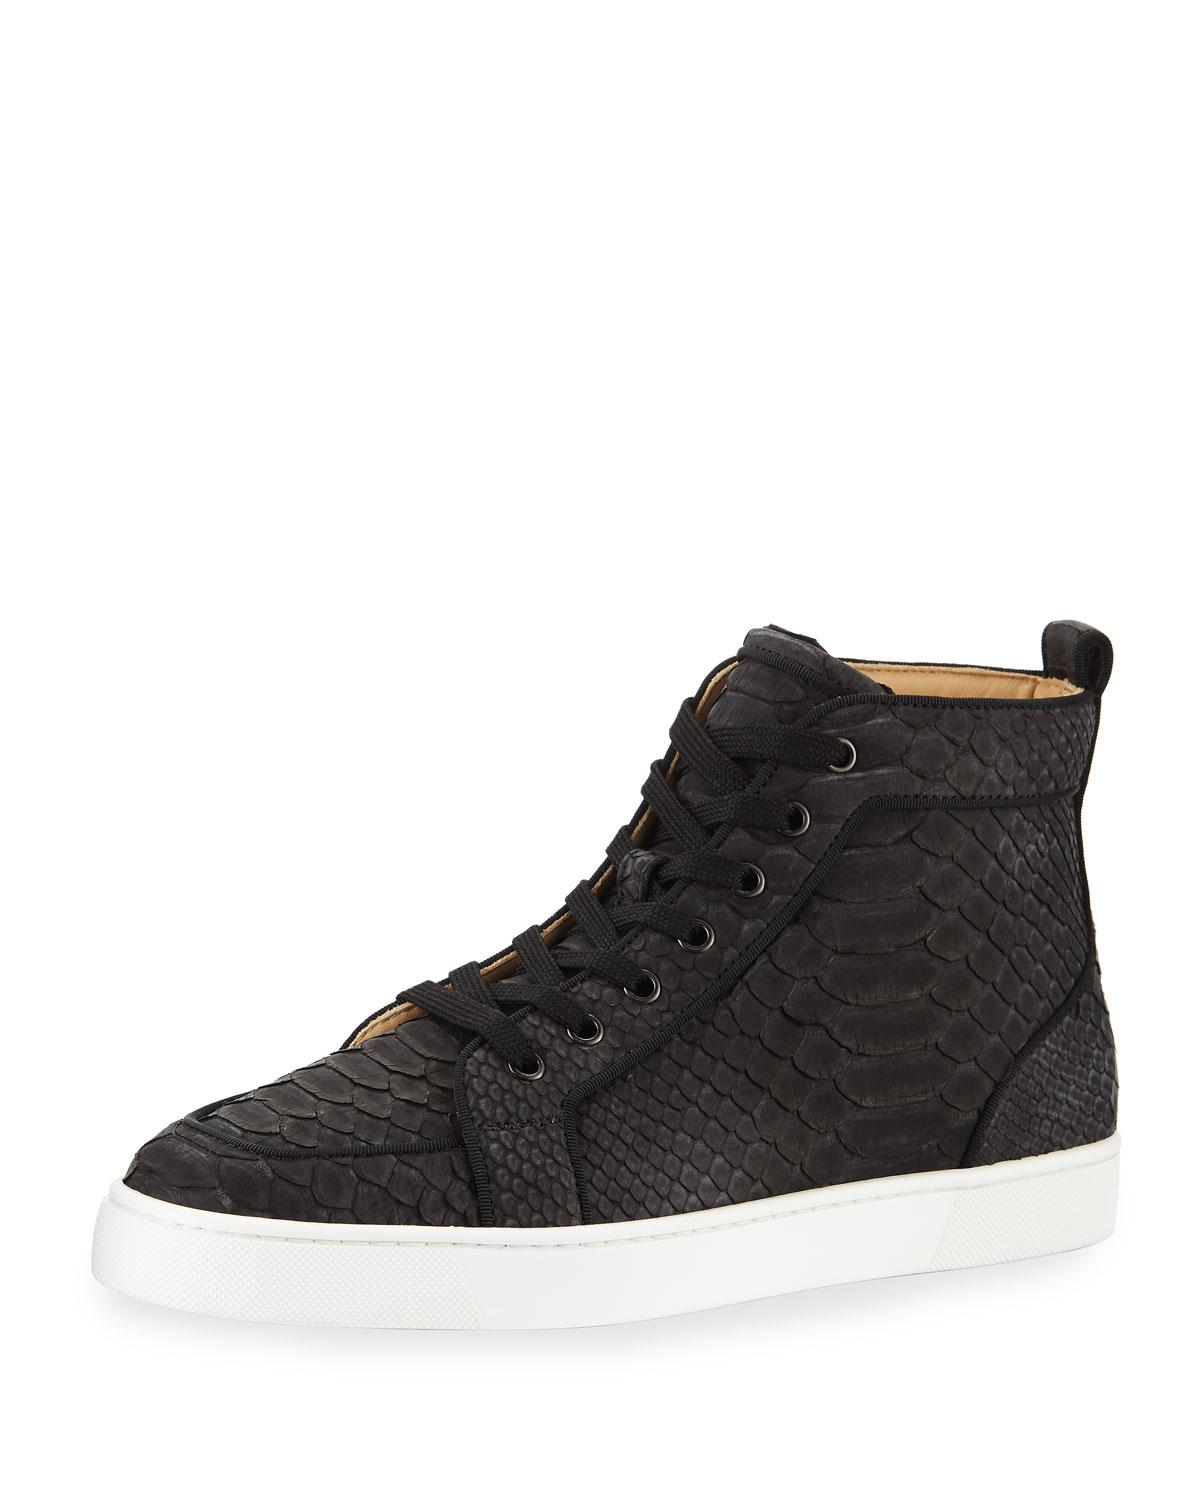 10be0a00c9db Christian Louboutin Men's Rantus Python High-top Sneakers in Black ...